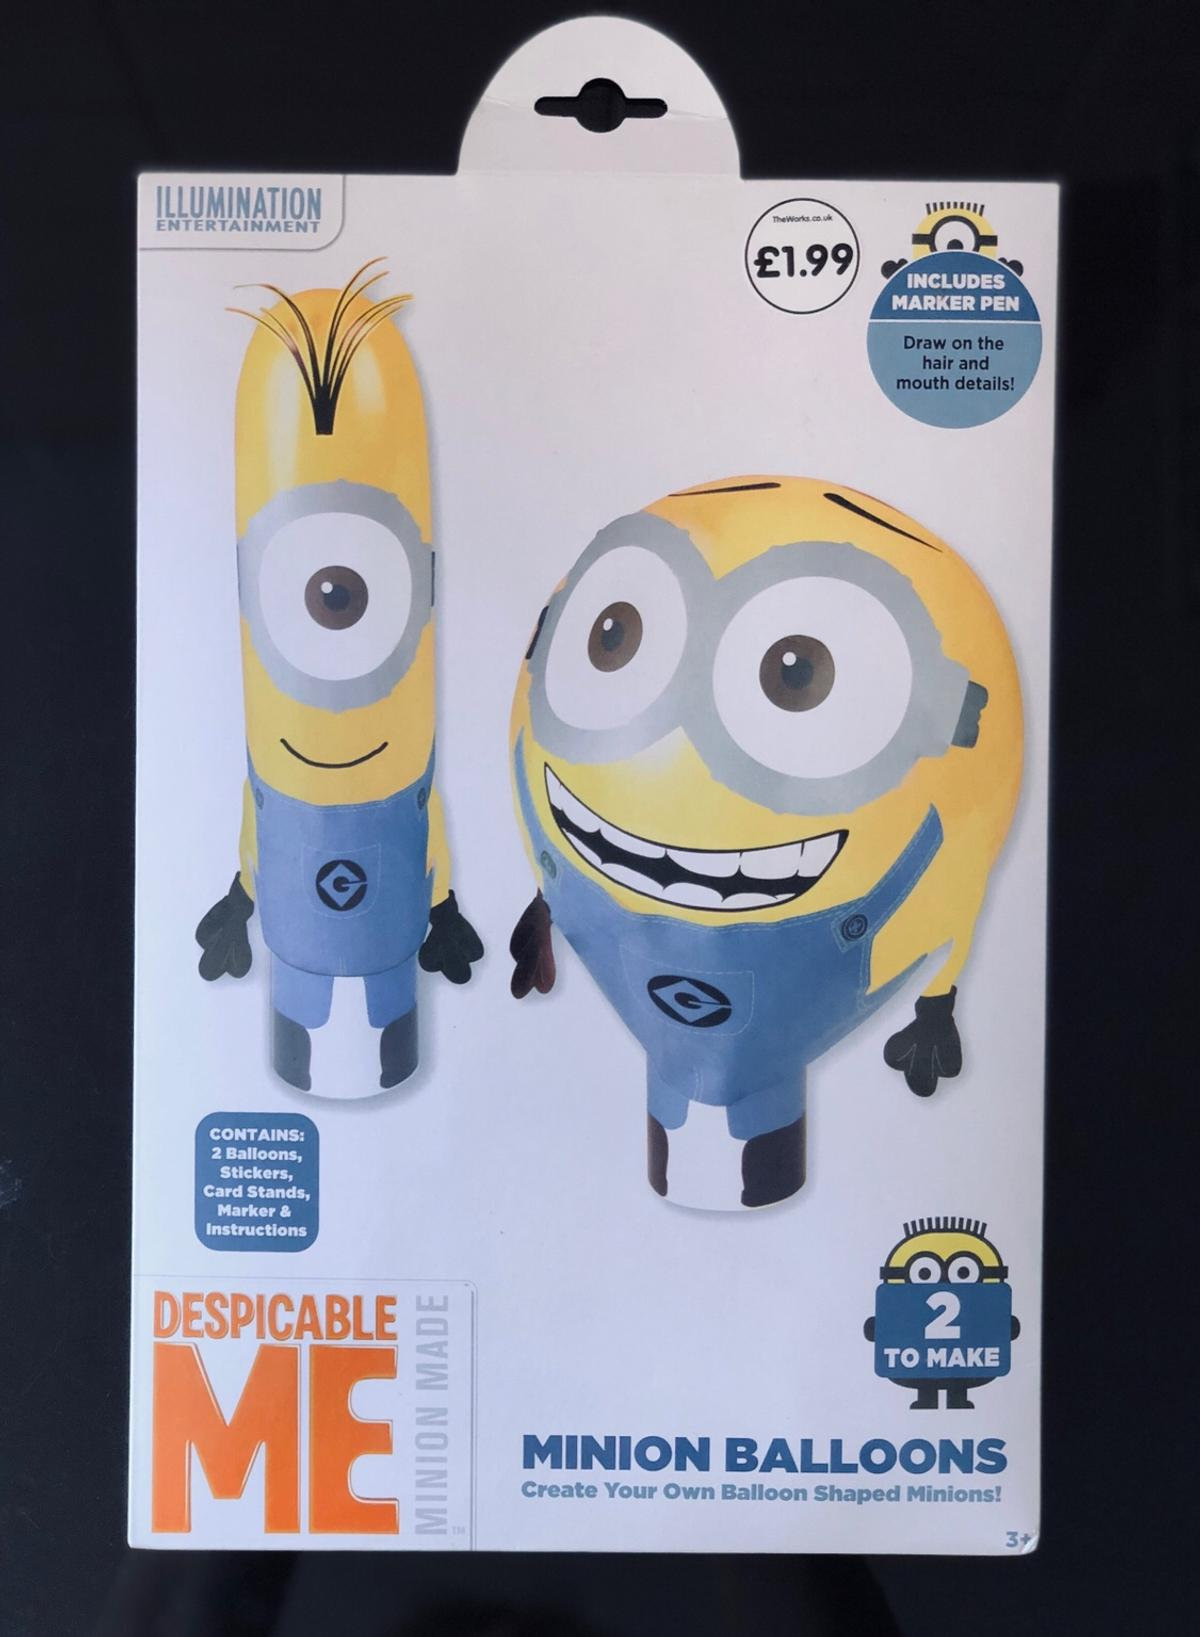 Despicable Meminion Balloons In Fy7 Wyre For 100 For Sale Shpock